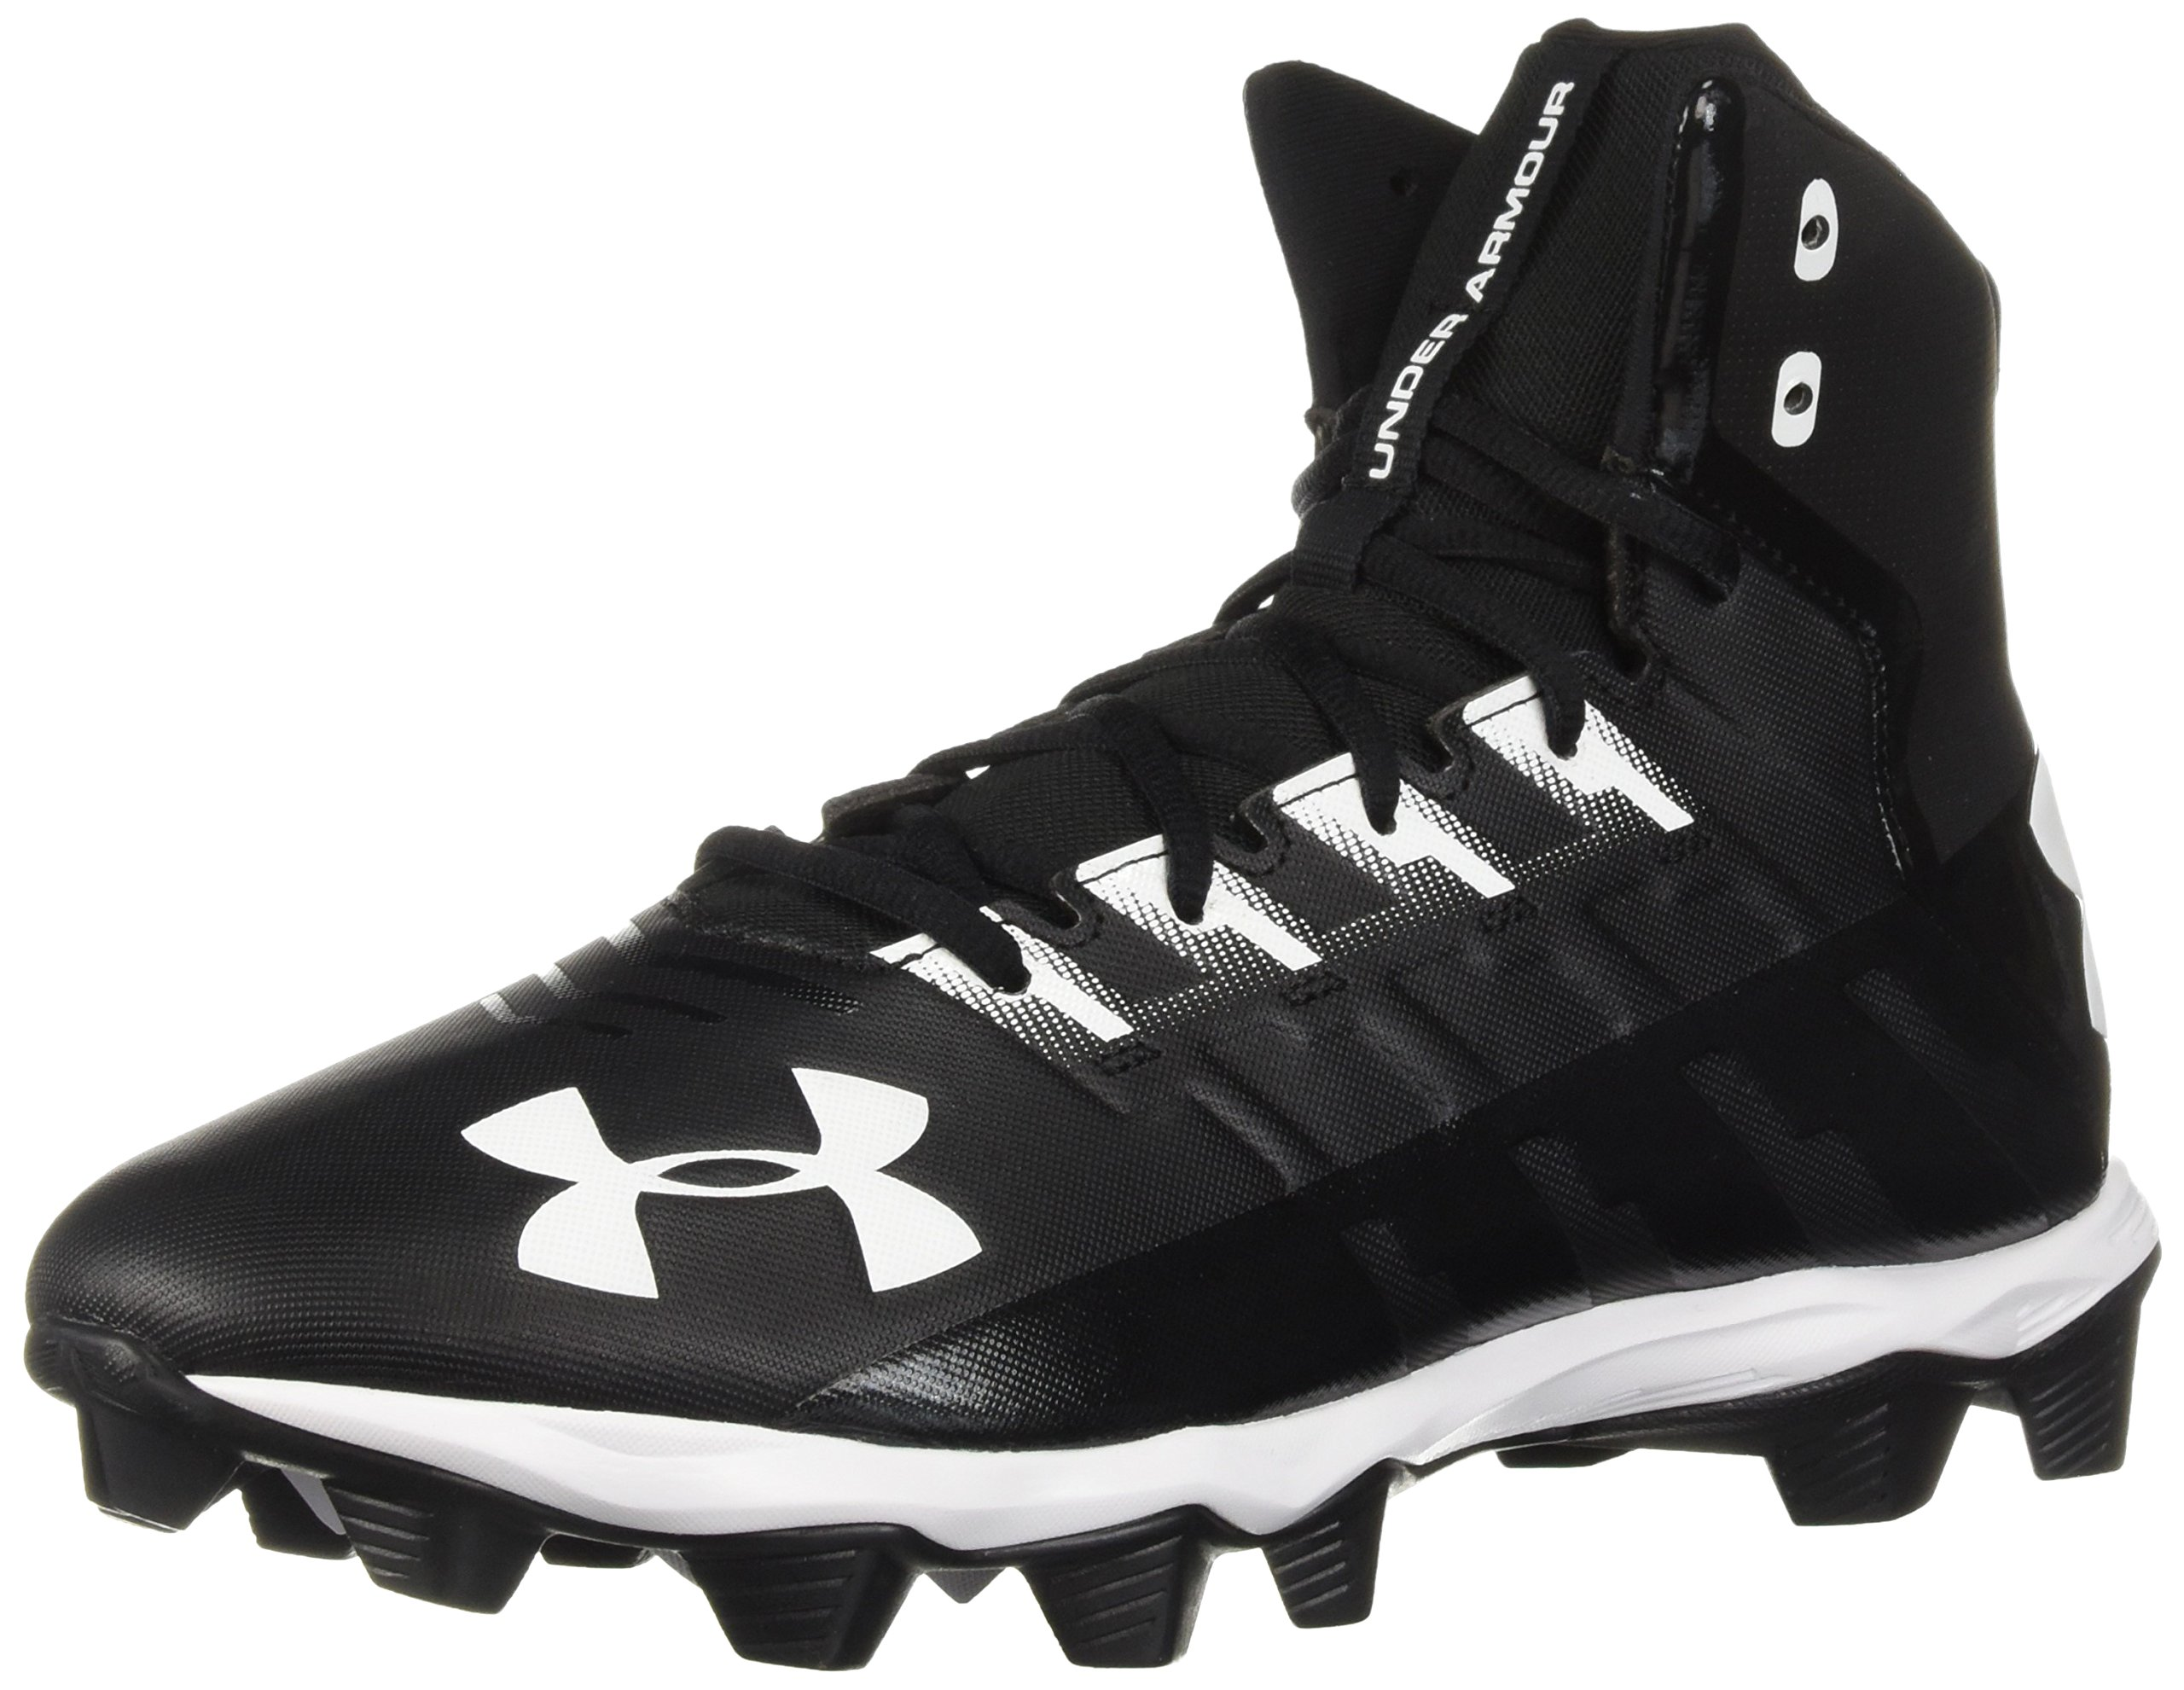 Under Armour Men's Renegade RM Wide Football Shoe 002/Black, 11 W US by Under Armour (Image #1)